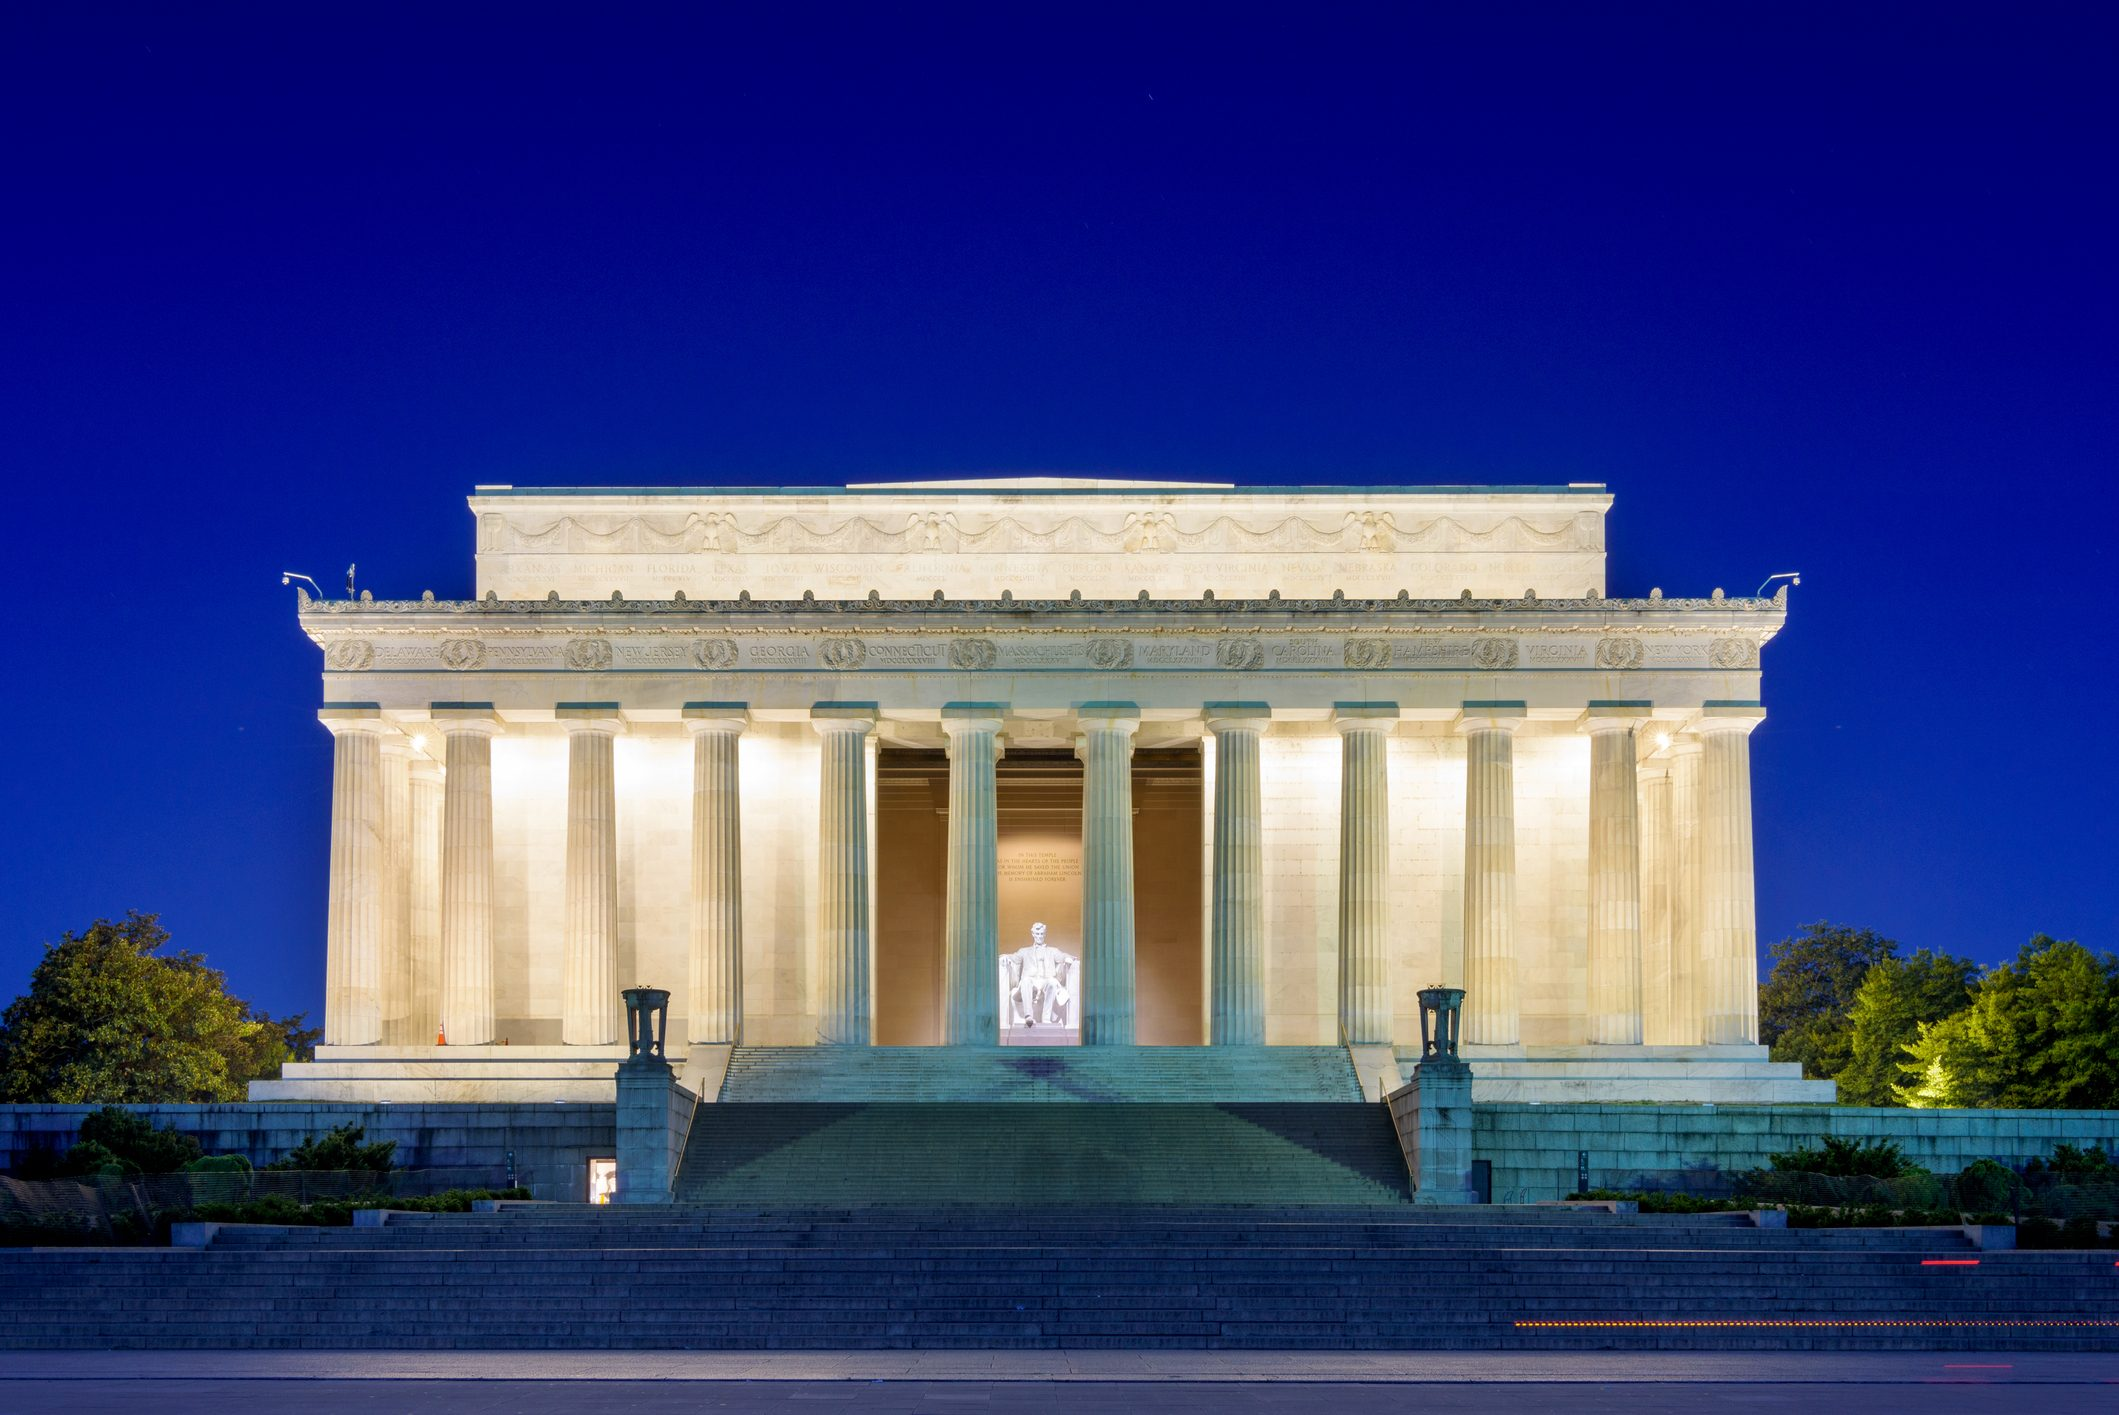 Lincoln Memorial in Washington DC in early morning, springtime